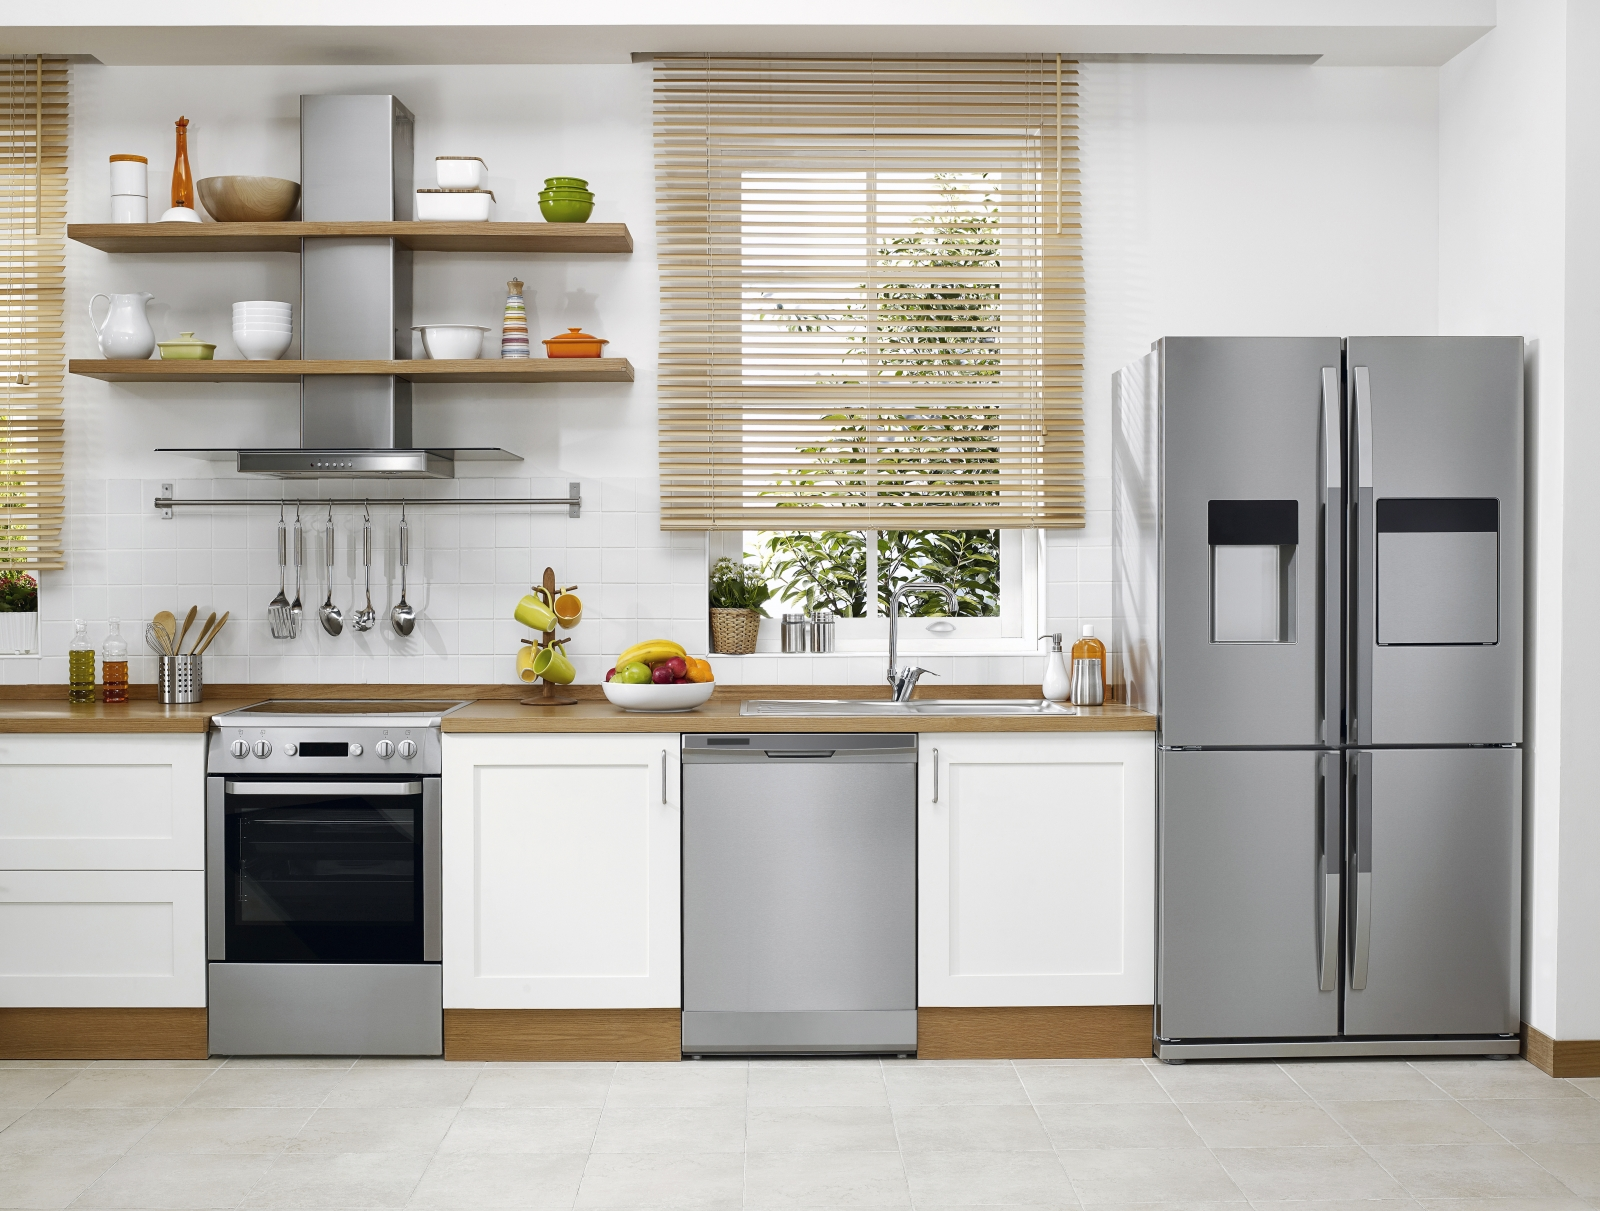 Brand new kitchen appliances in modern kitchen